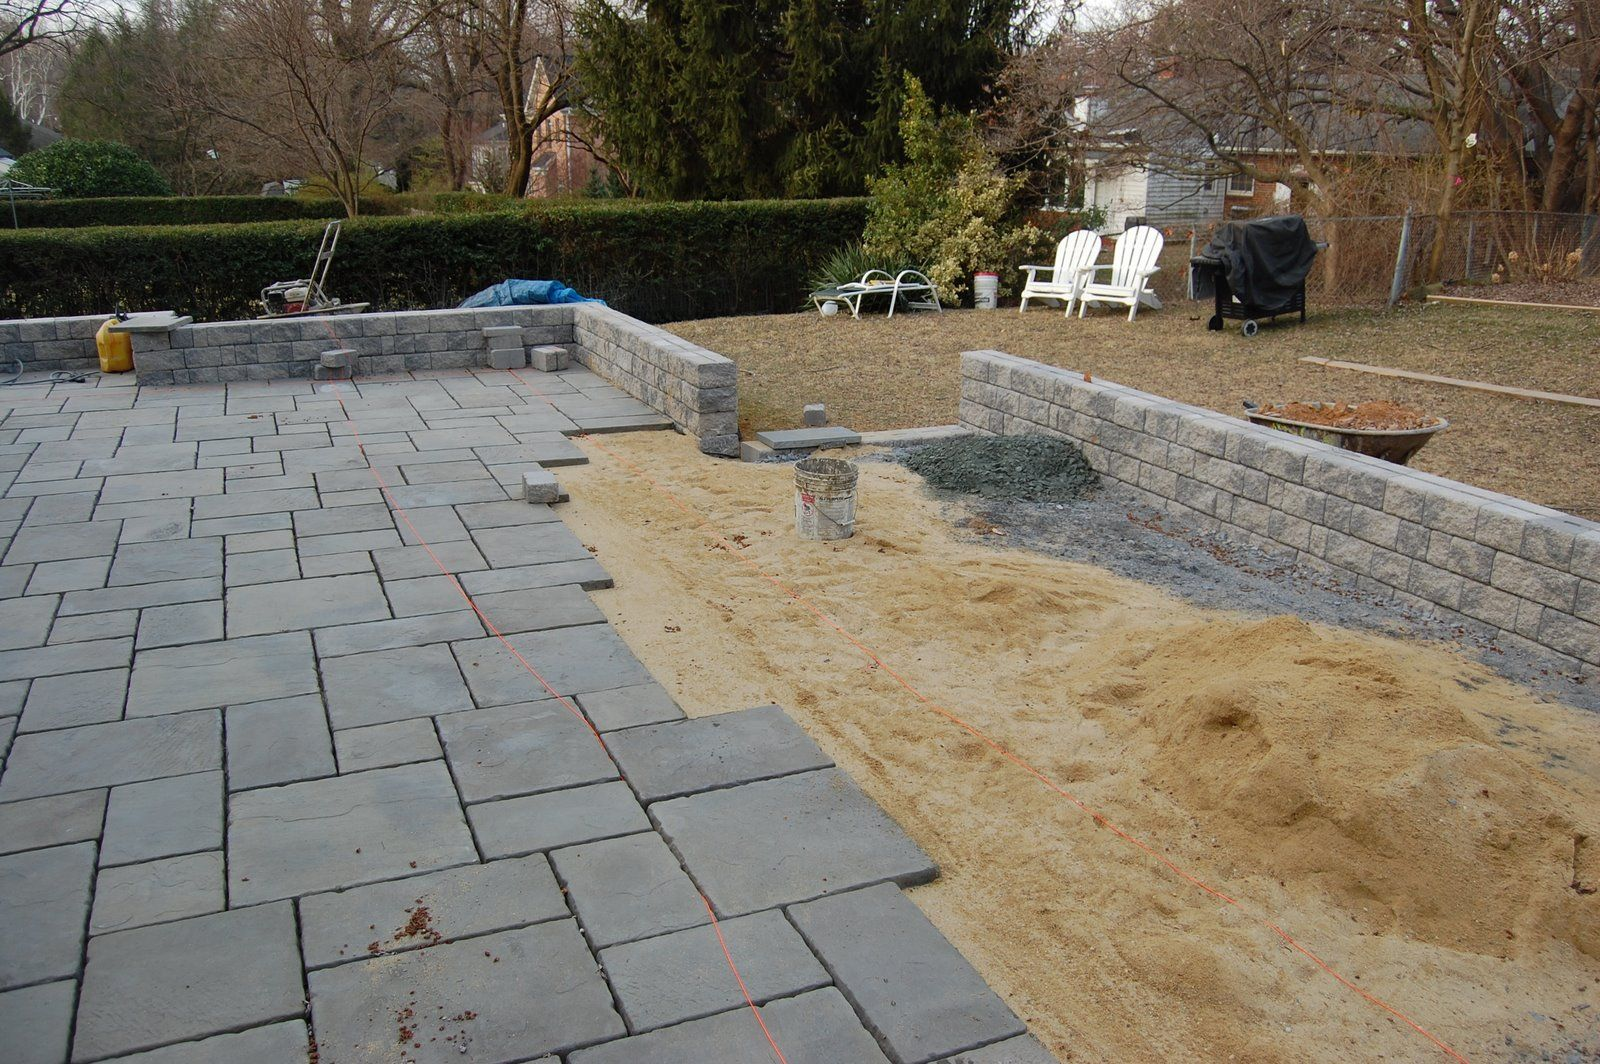 flagstone patio ideas 25 great stone patio ideas for your home 1920s patio material design patio - Bluestone Patio Ideas